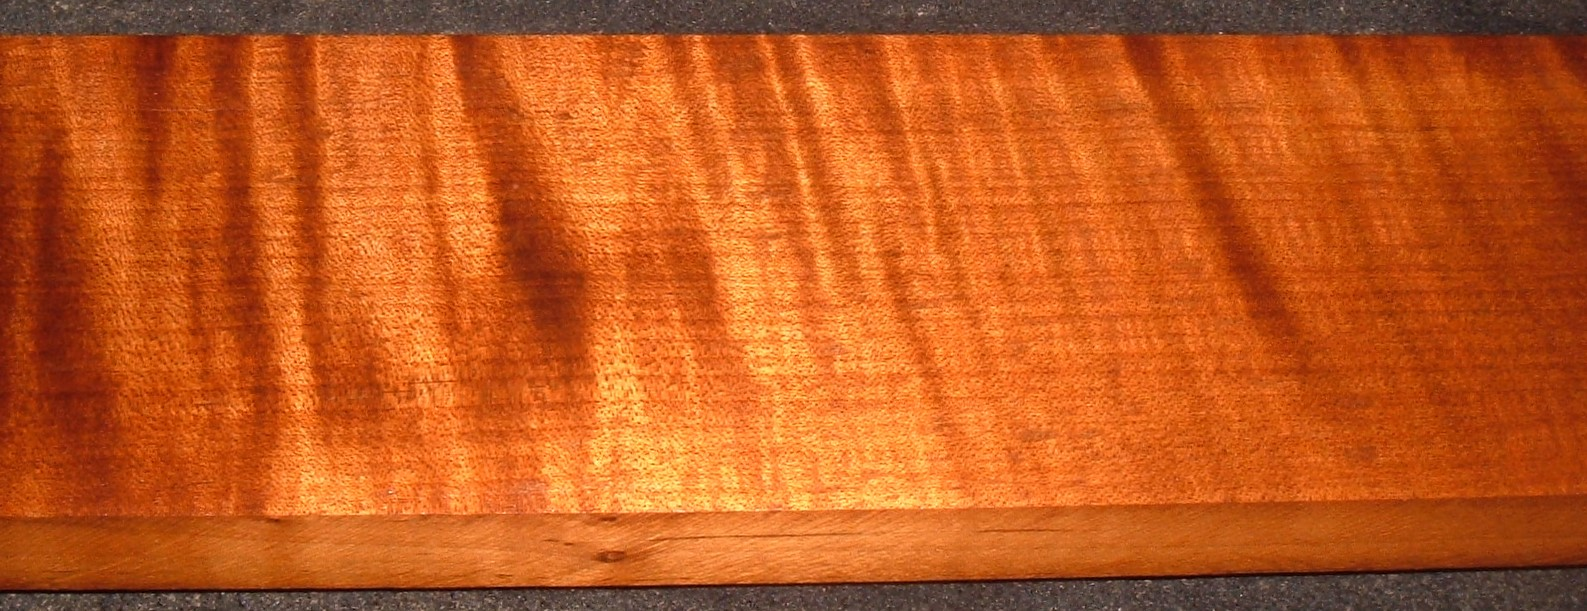 QRM2103-108JK, 1x4-1/2x43, Roasted Torrefied, Curly Tiger Quartersawn Maple